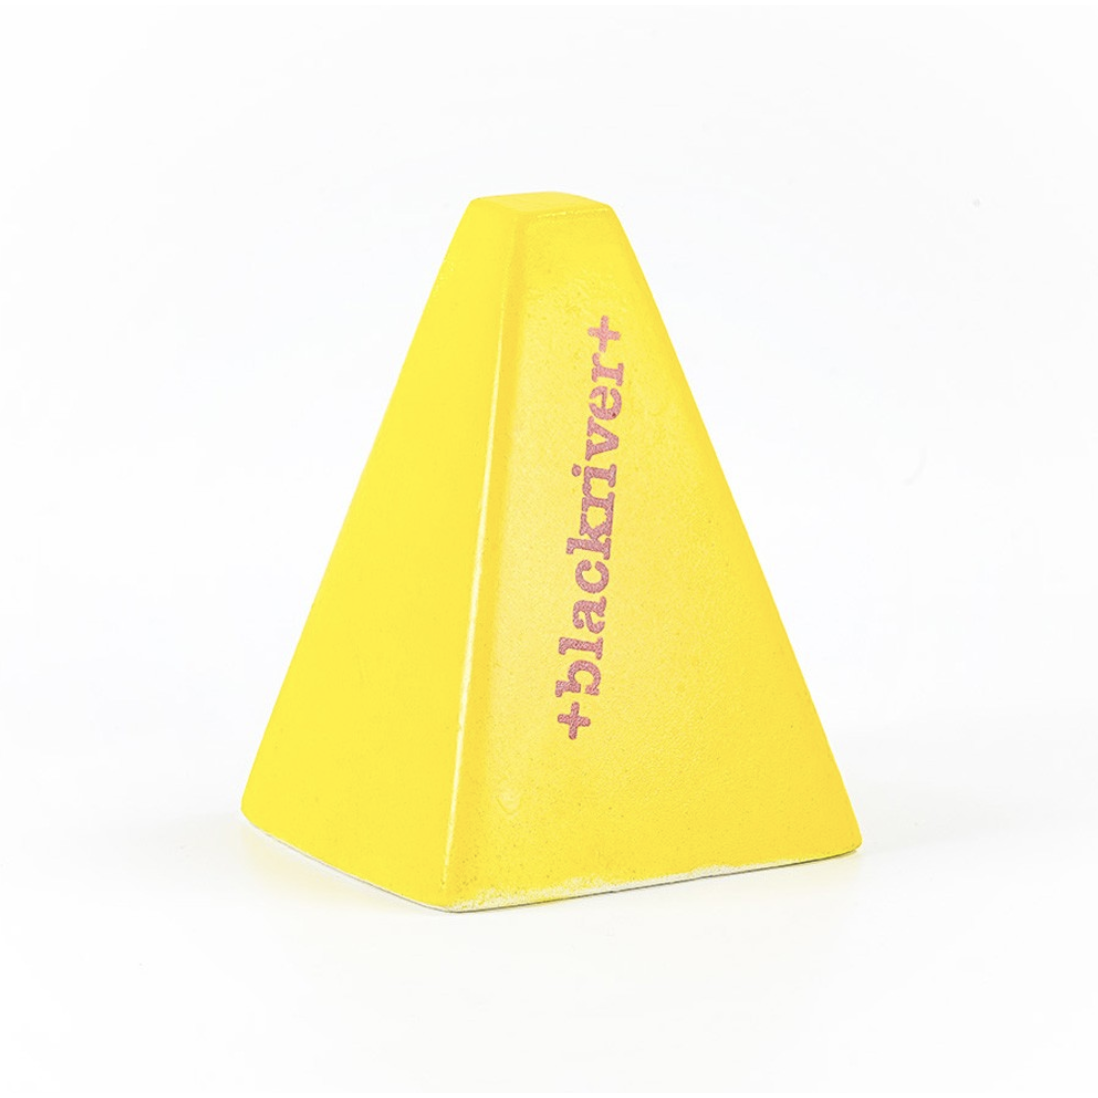 Blackriver ramps - Wallie Pylon Yellow